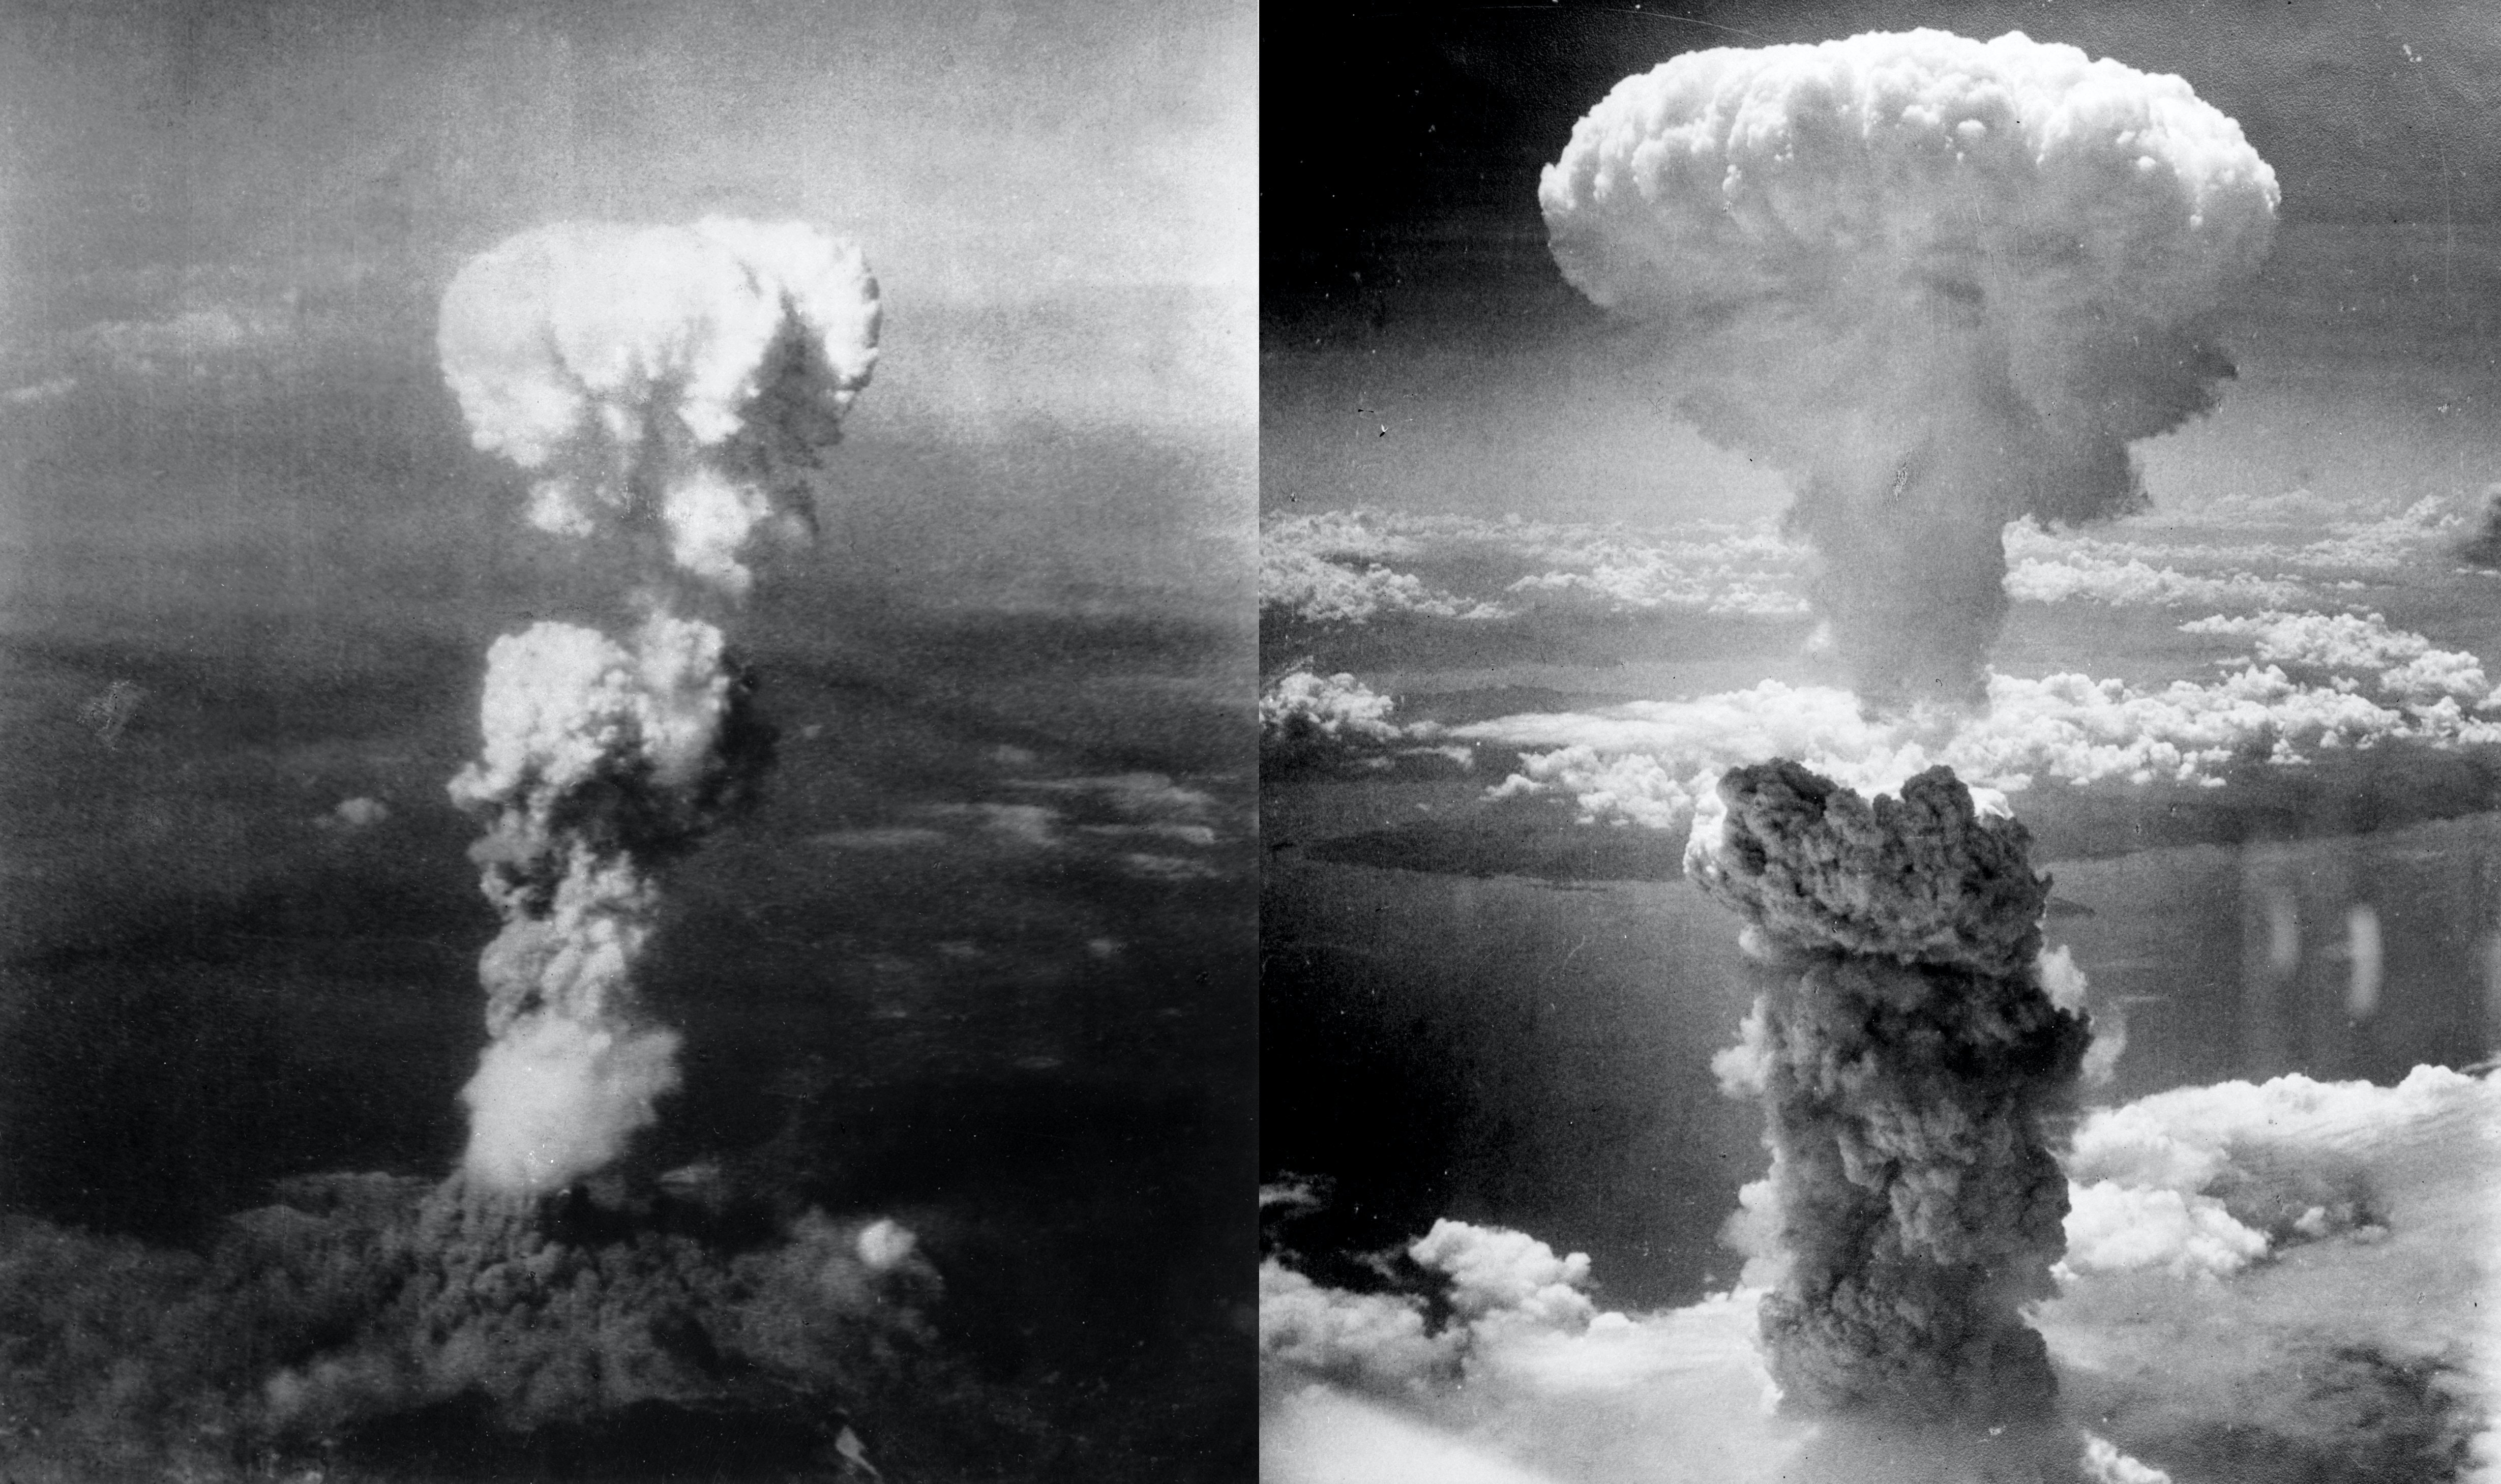 an analysis of the united state decision to drop the atomic bomb on hiroshima and nagasaki The soviet union had entered the war against japan, and the atomic bomb could be read as a strong message for the soviets to tread lightly in this respect, hiroshima and nagasaki may have been the first shots of the cold war as well as the final shots of world war ii regardless, the united states remains the only nation.